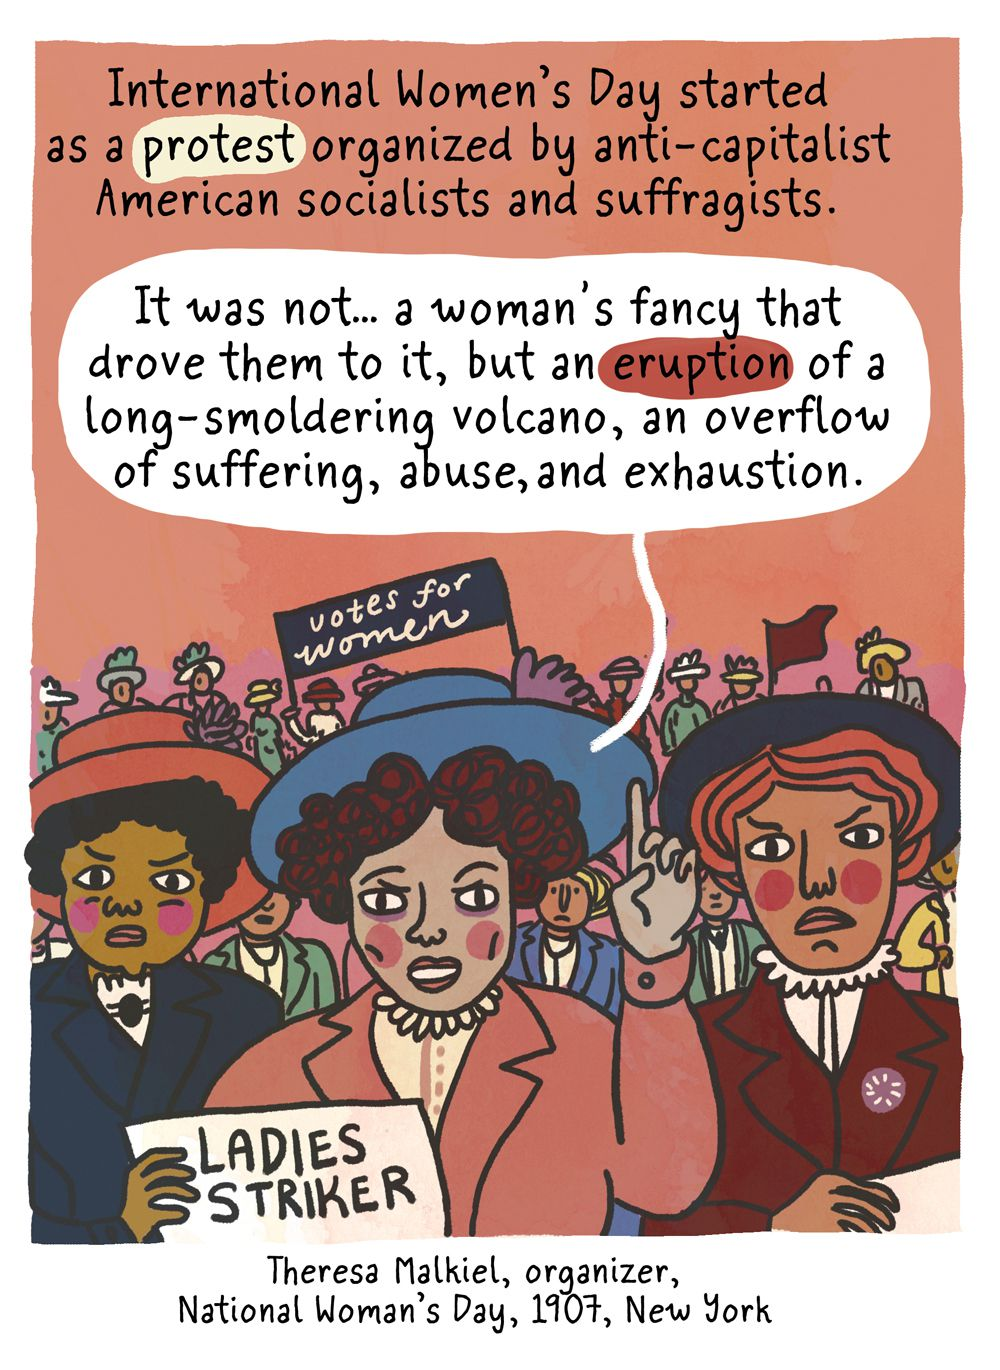 """International Women's Day started as a protest organized by anti-capitalist American socialists and suffragists. """"It was not … a woman's fancy that drove them to it, but an eruption of a long-smoldering volcano, an overflow of suffering, abuse, and exhaustion."""" - Theresa Malkiel, organizer of the 1907 National Woman's Day."""